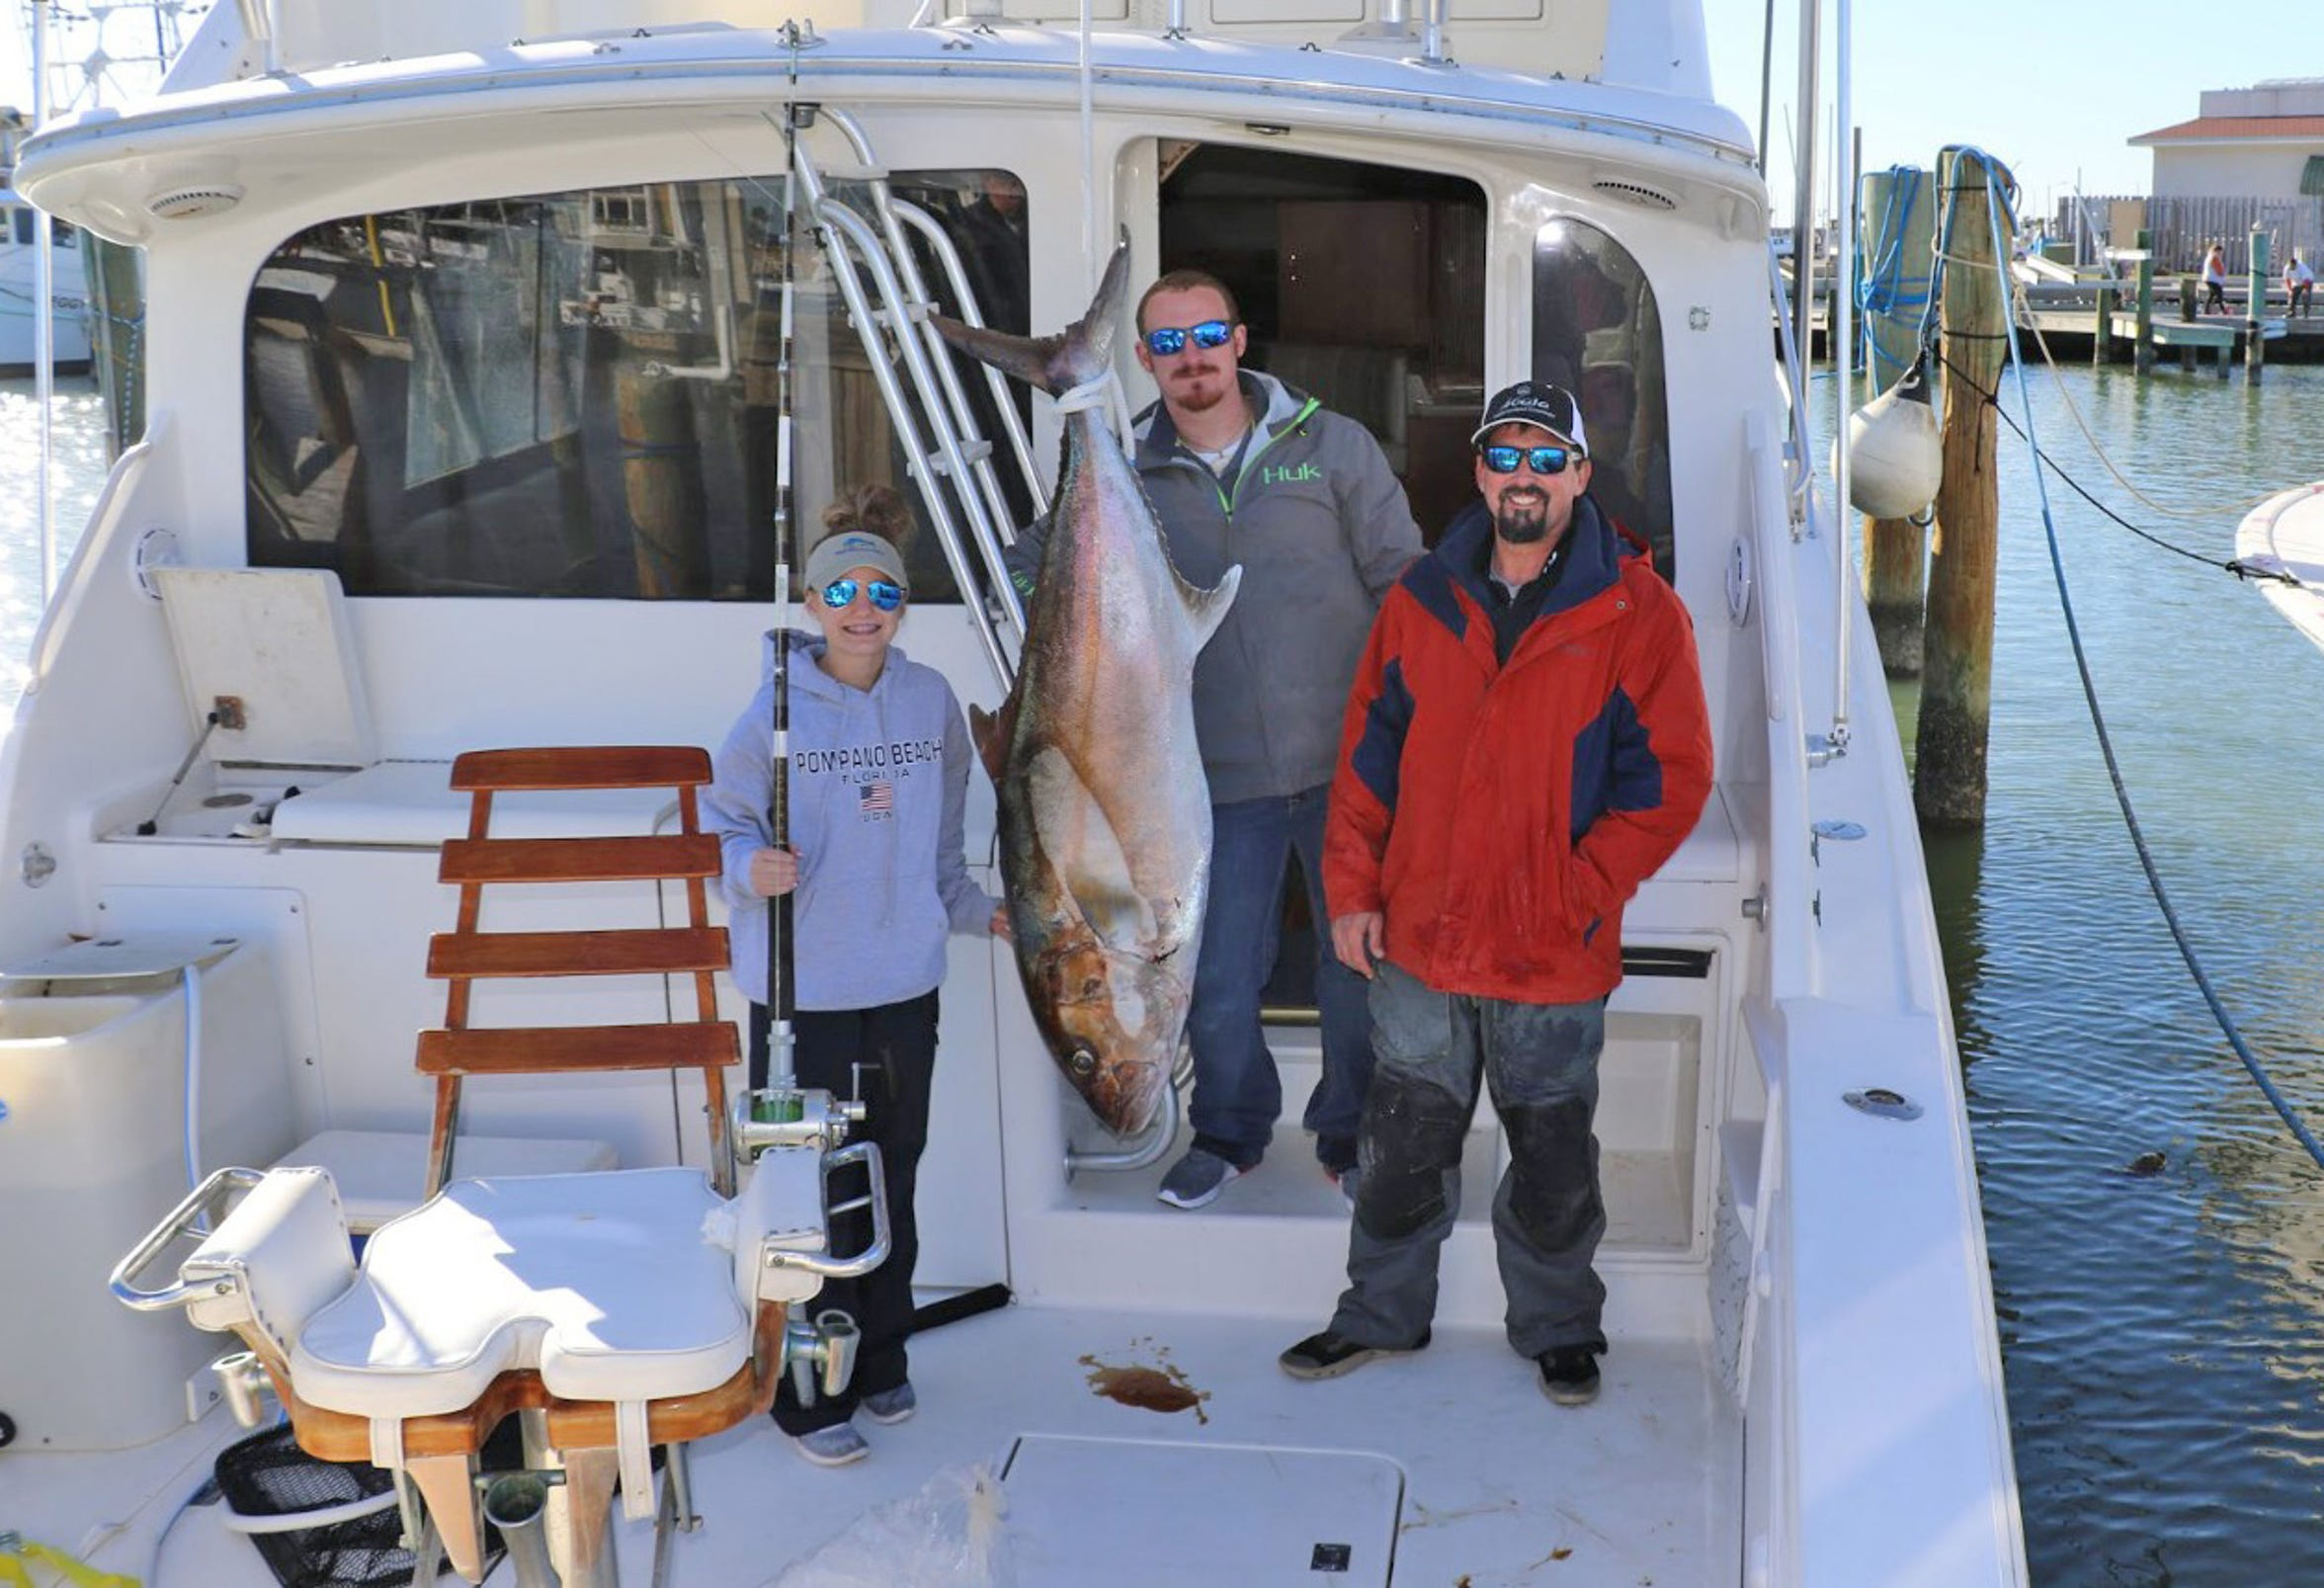 Reece Rockett was fishing about 50 miles offshore with Capt. Jake Mynier when she landed her world-record AJ.